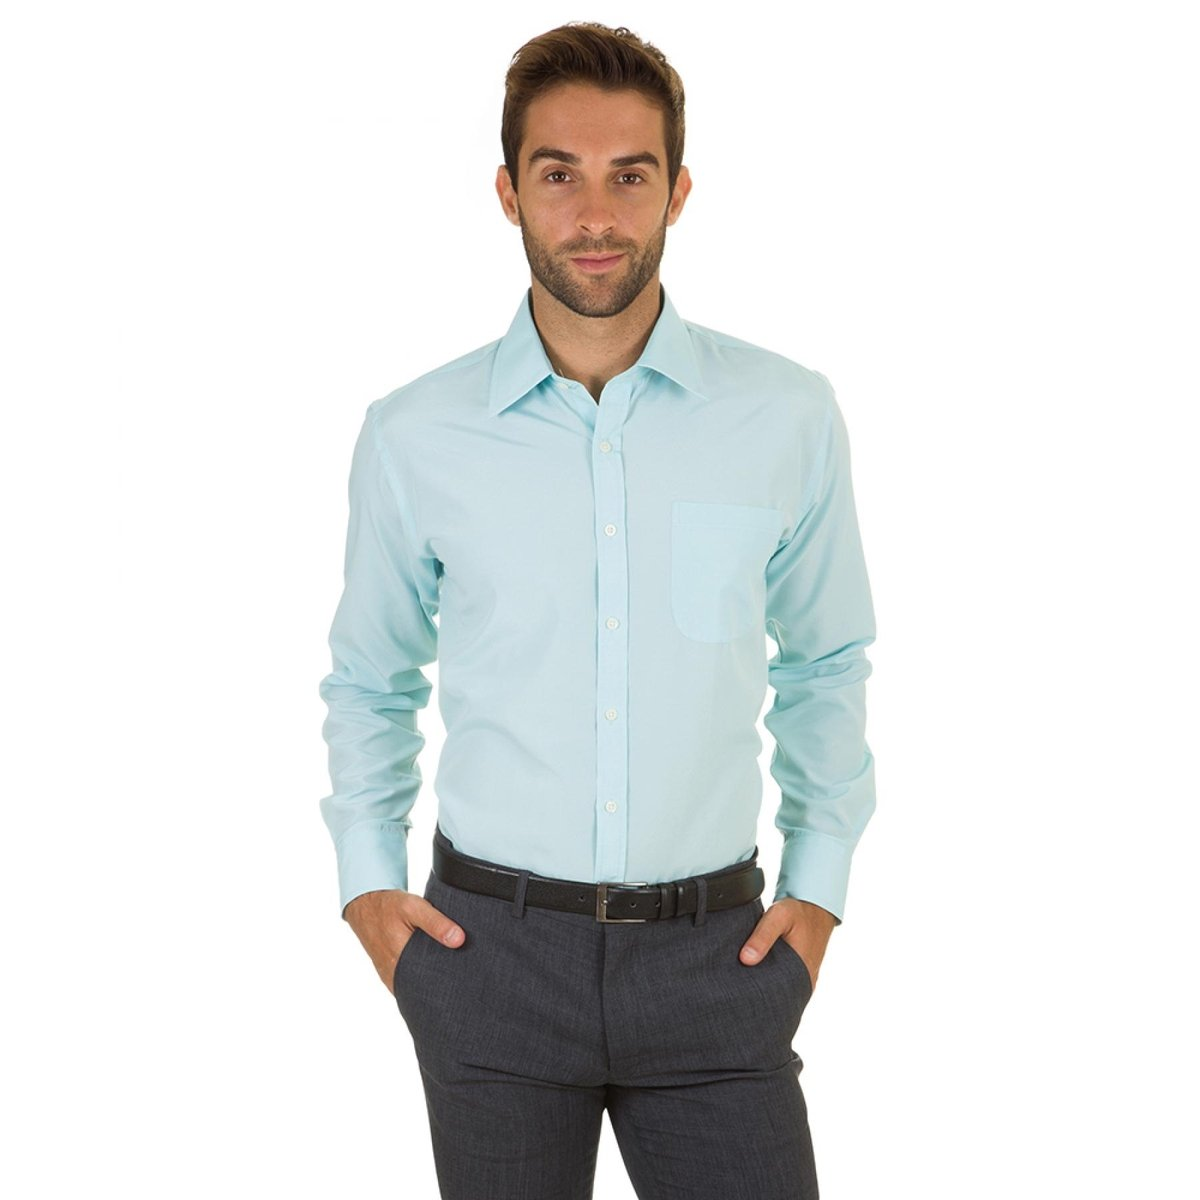 62d084524c Camisa Social Colombo Masculino | Netshoes